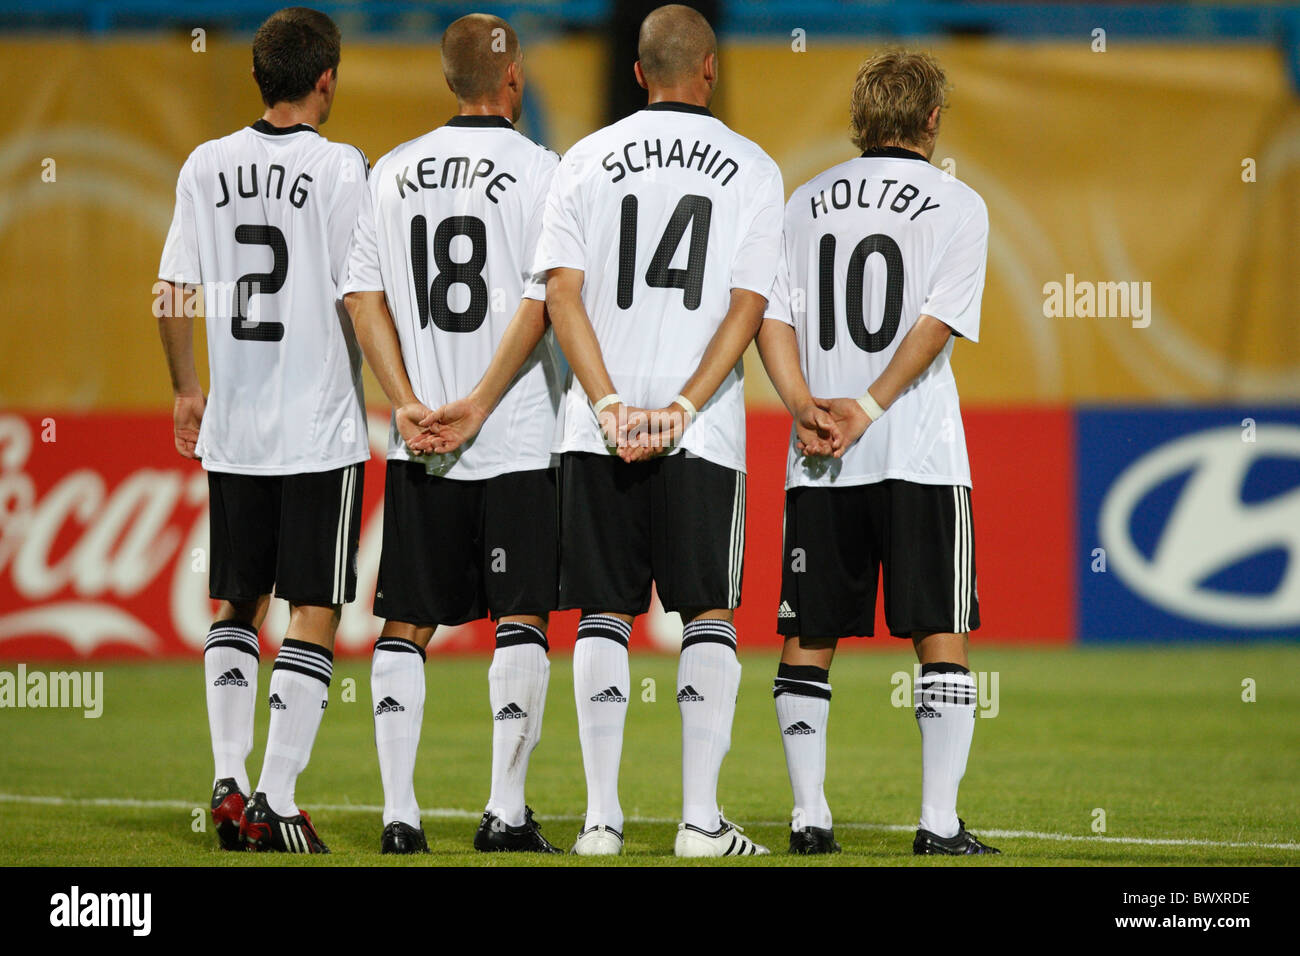 German players set up a defensive wall during a FIFA U-20 World Cup Group C match against Cameroon October 2, 2009 - Stock Image